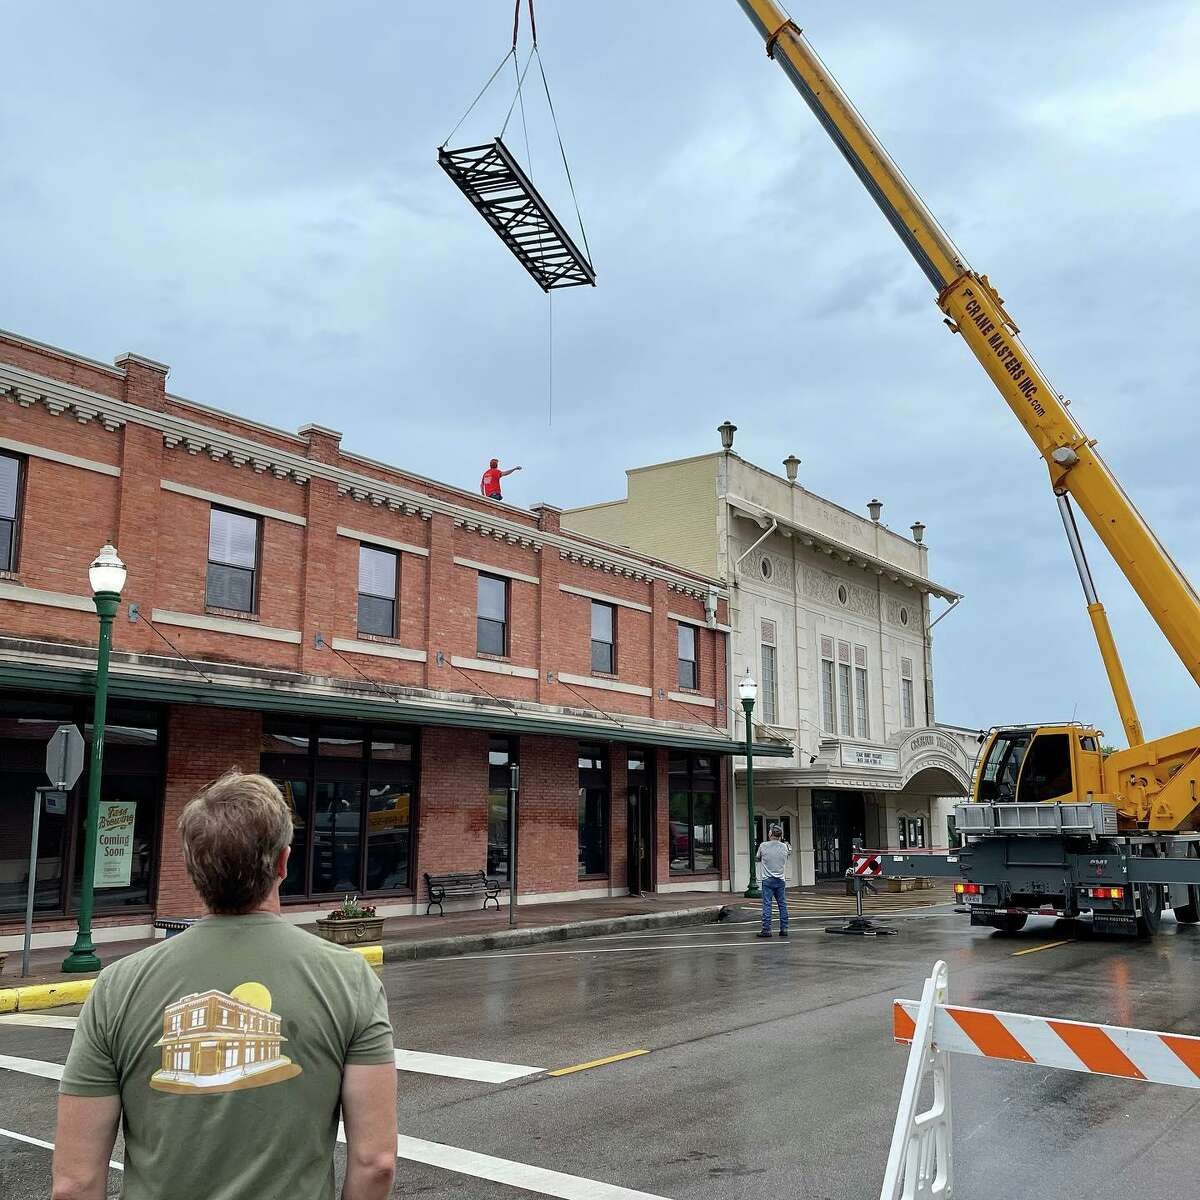 Tom Emmons, Fass Brewing CEO, looks on as the glycol chiller is install at Fass Brewing on Main Street in Conroe.